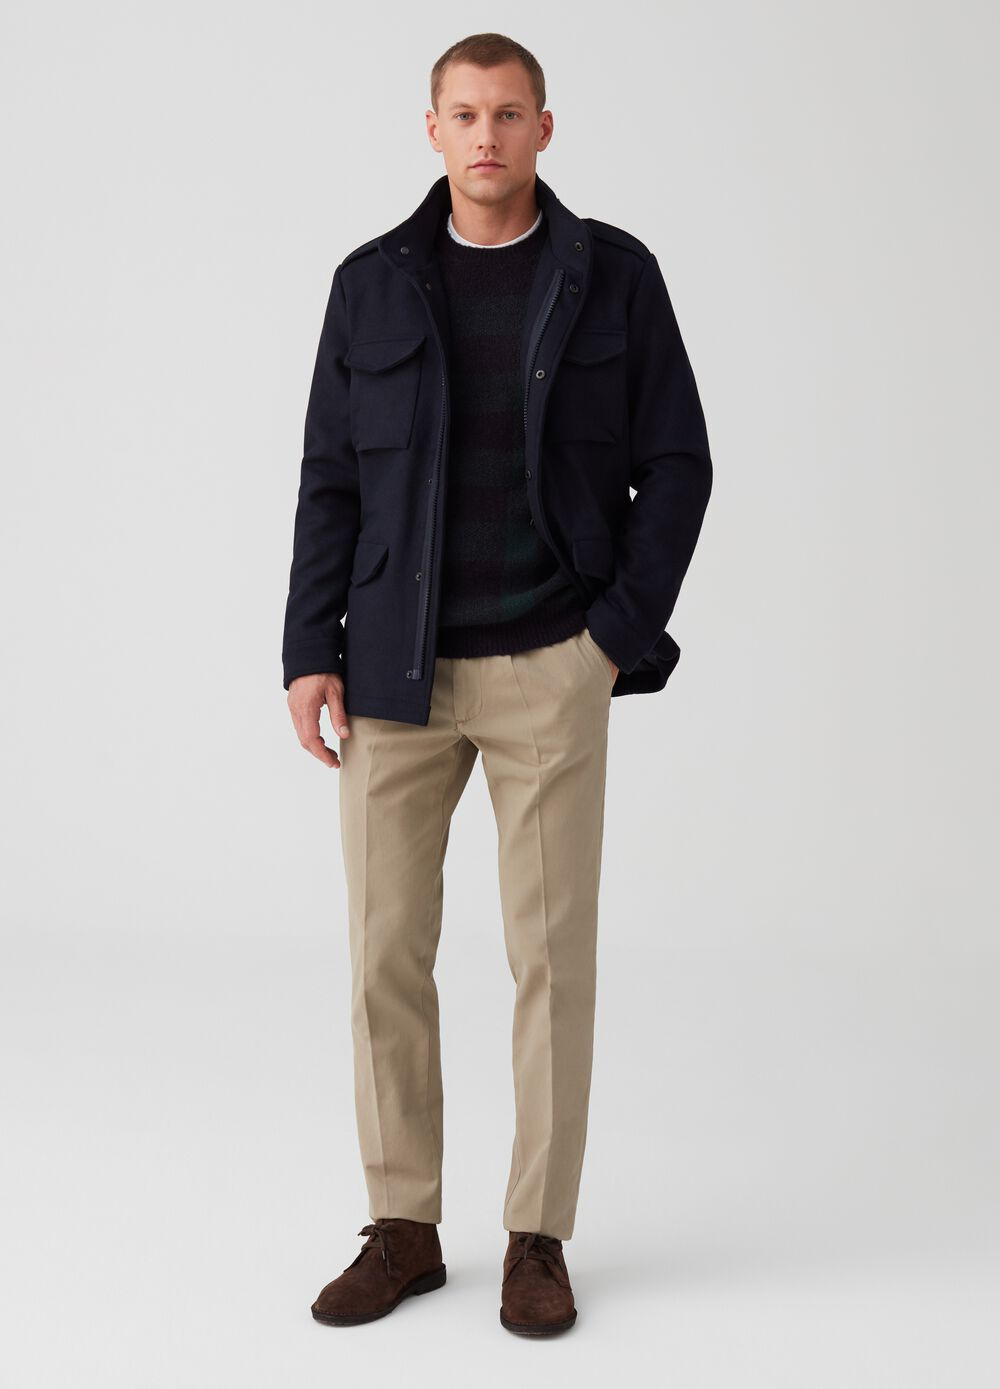 Wool blend jacket with high neck and pockets